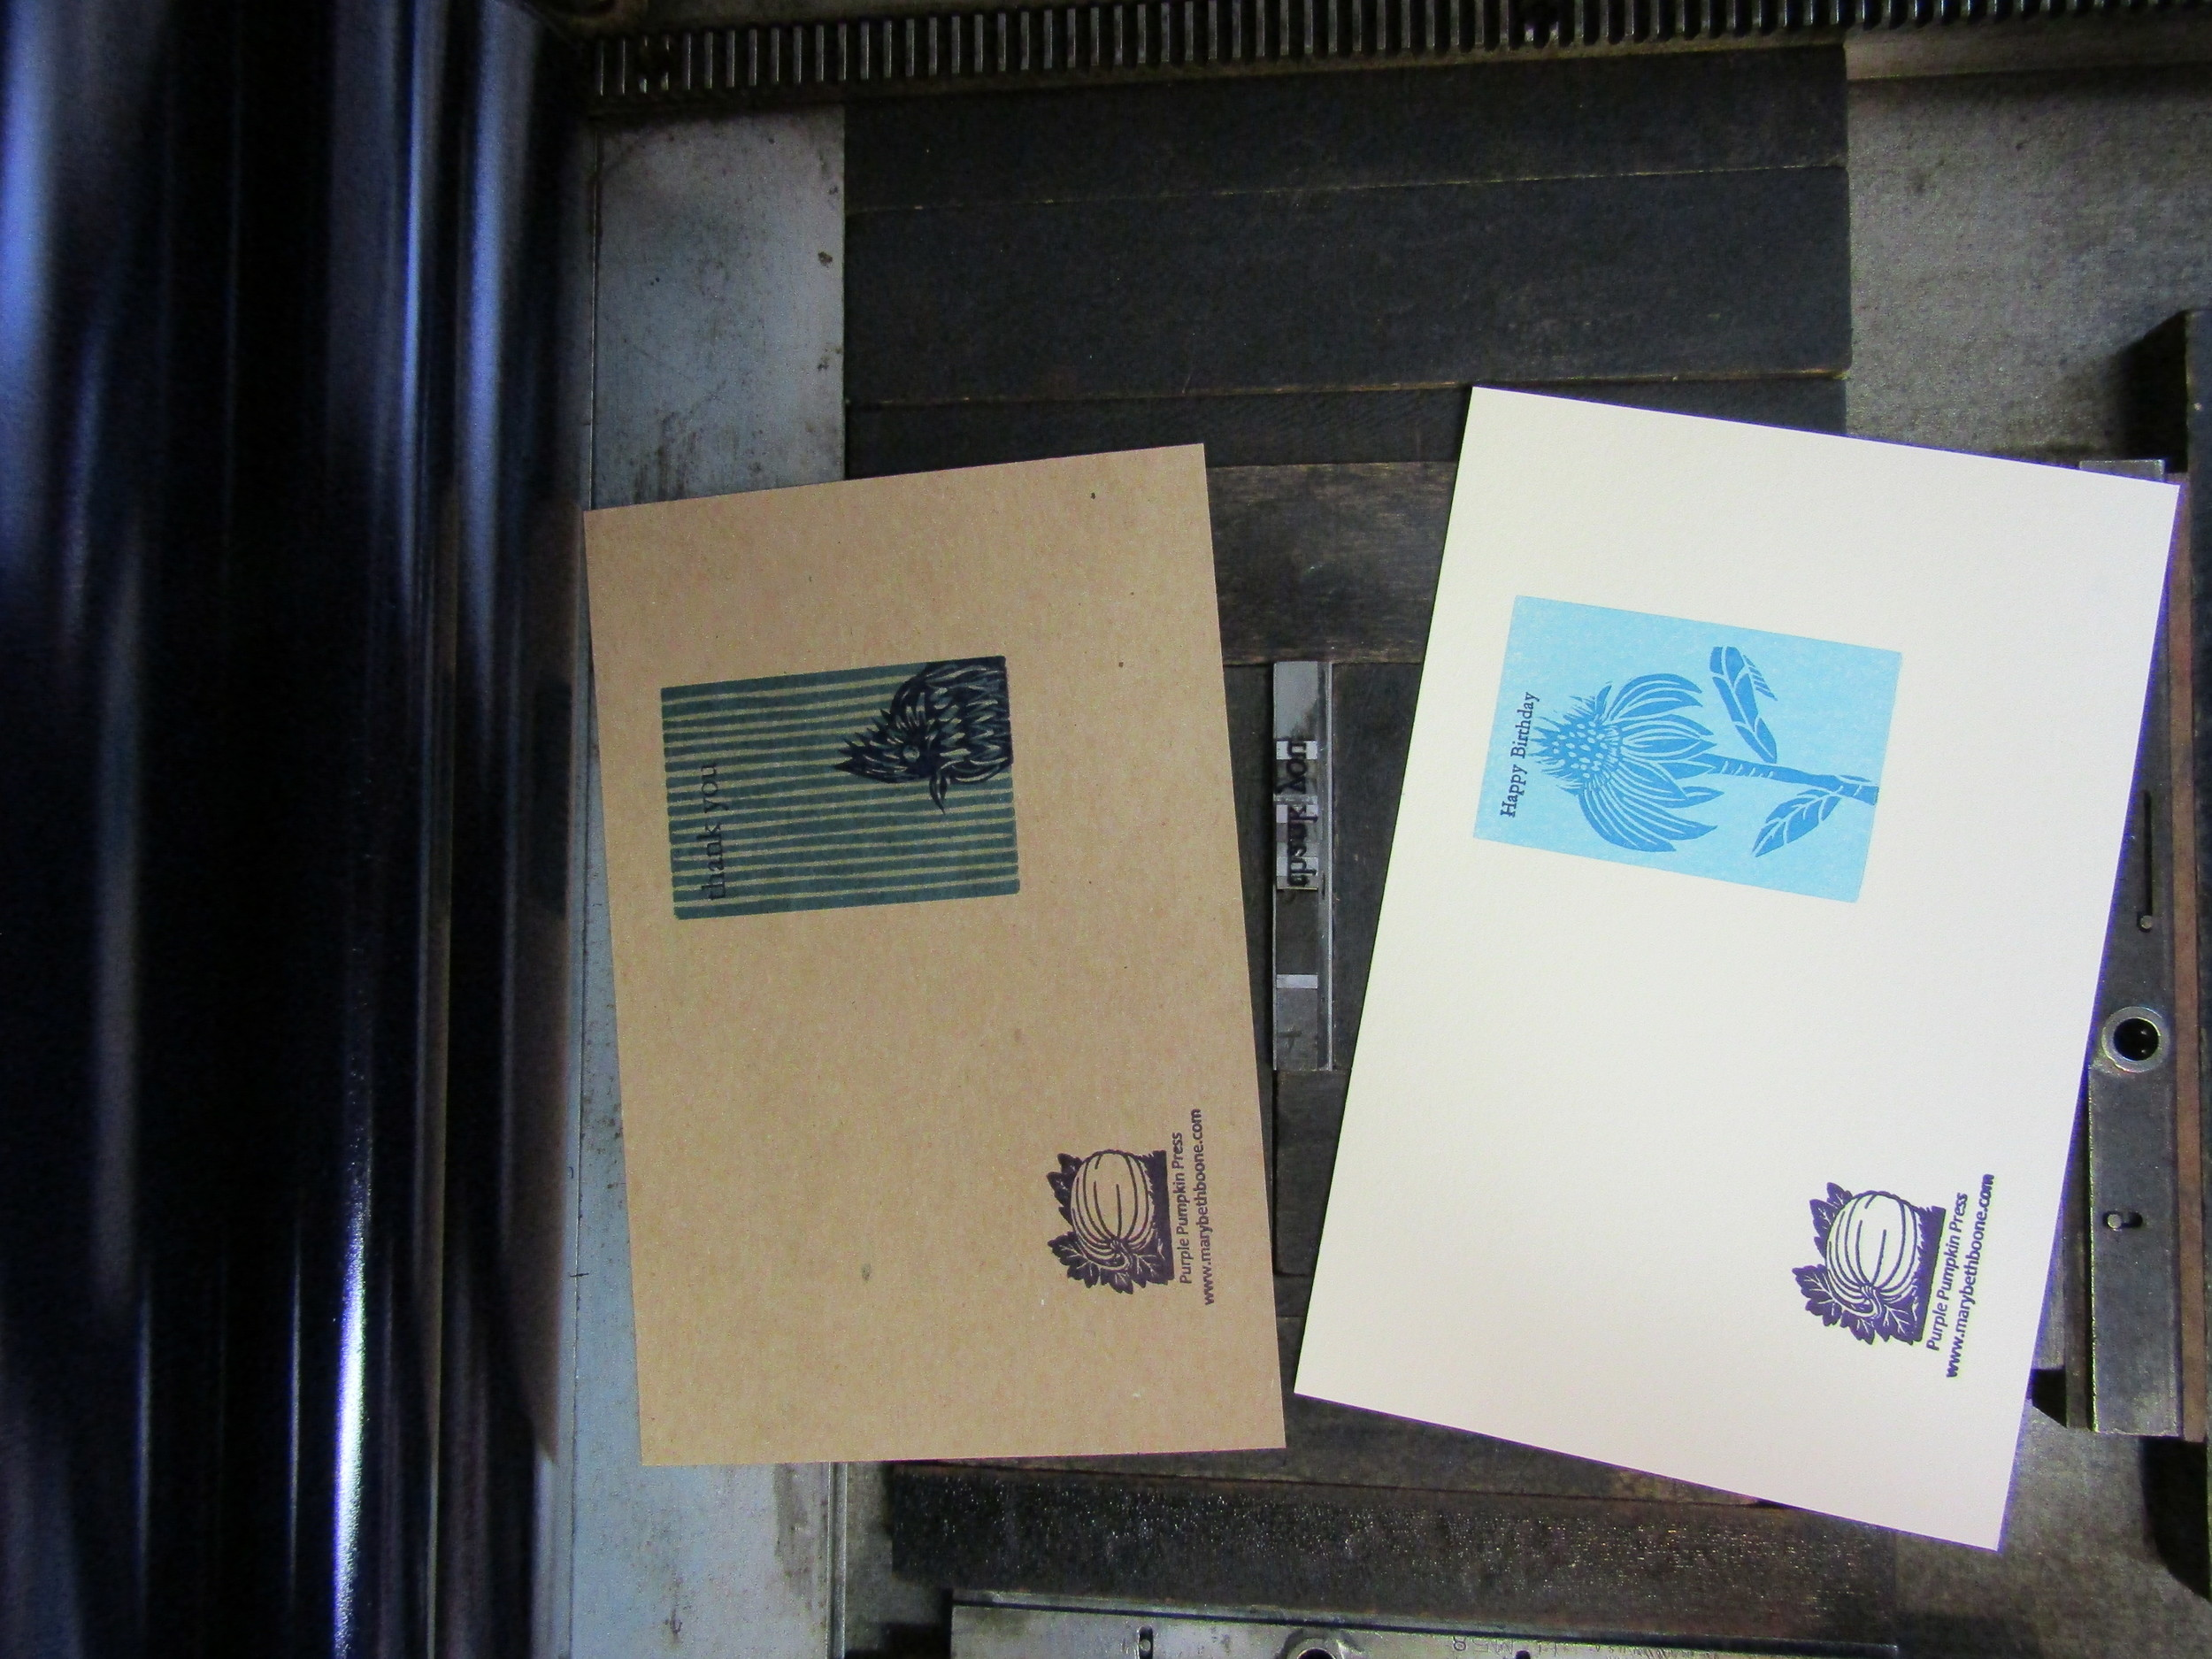 Greetings printed using handset metal type. I will fold and package once dry.